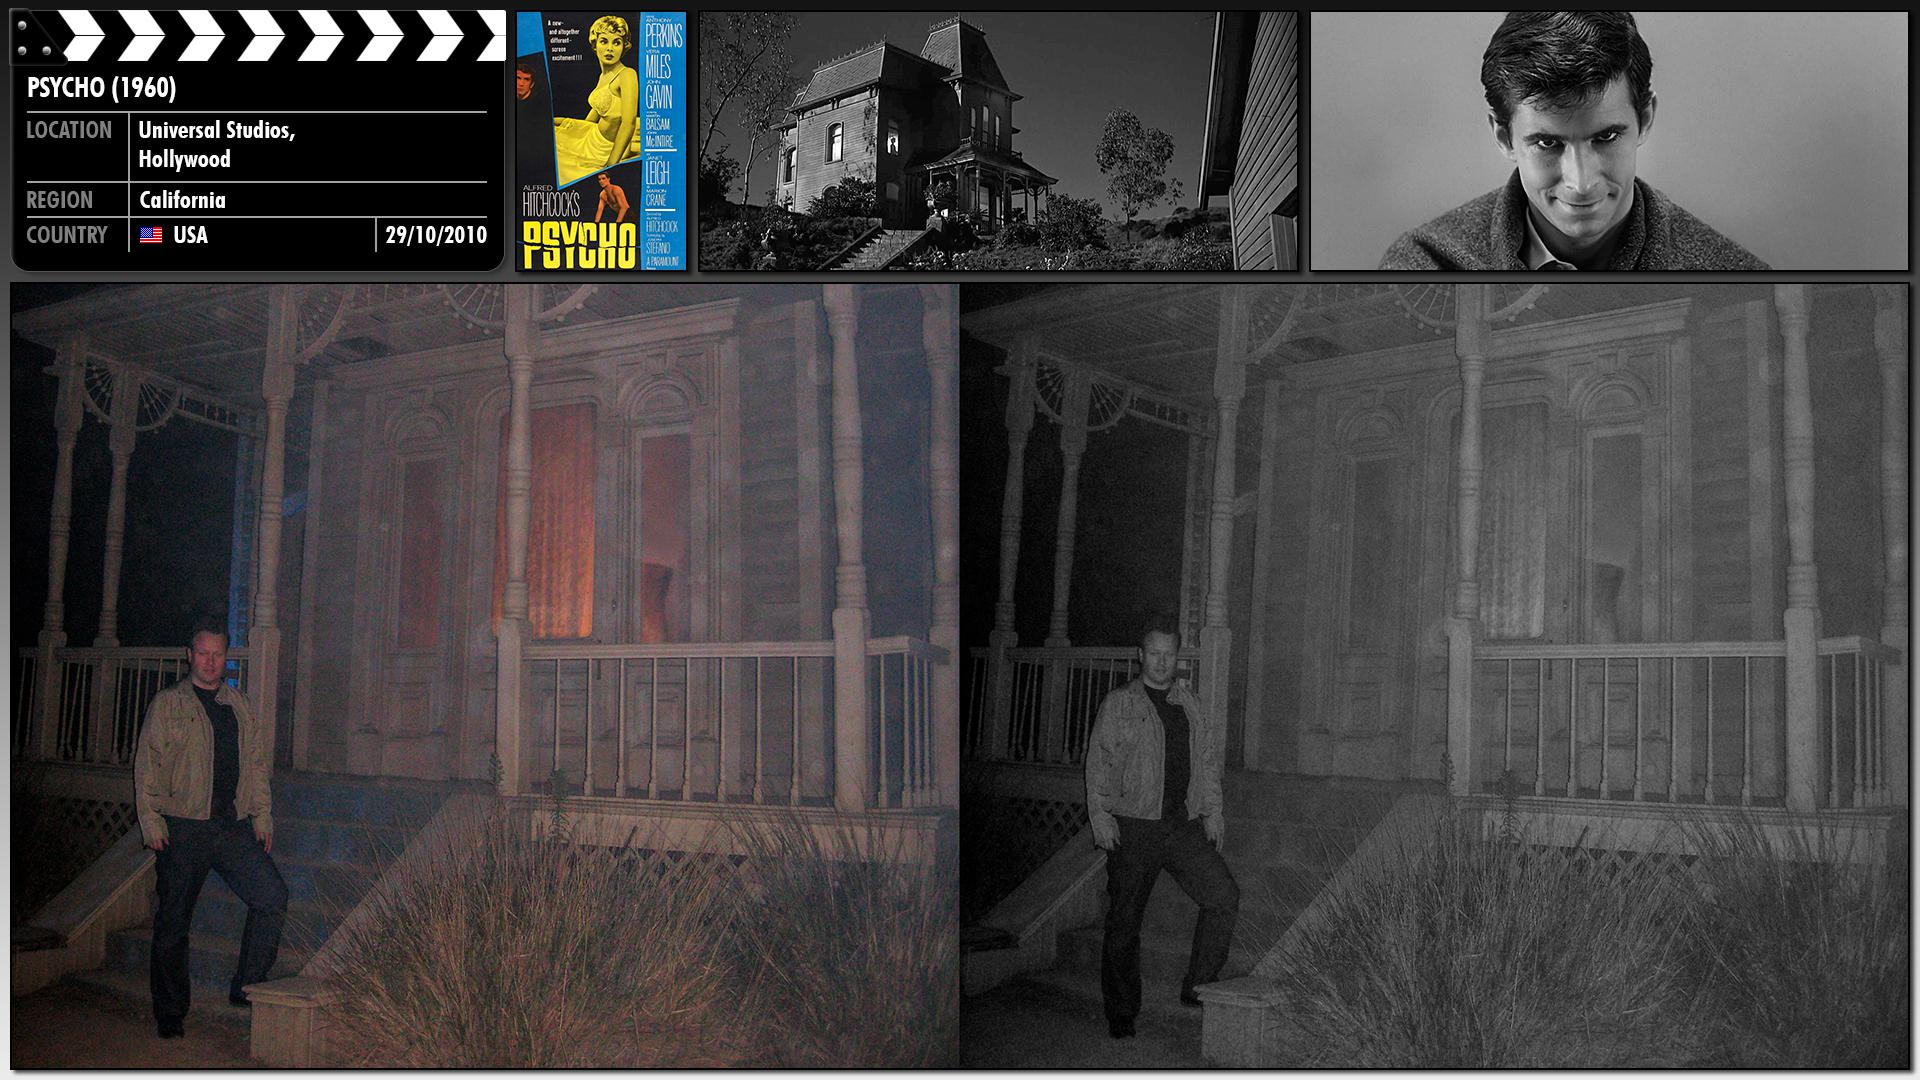 Filming location photo for Psycho (1960) 1 of 1